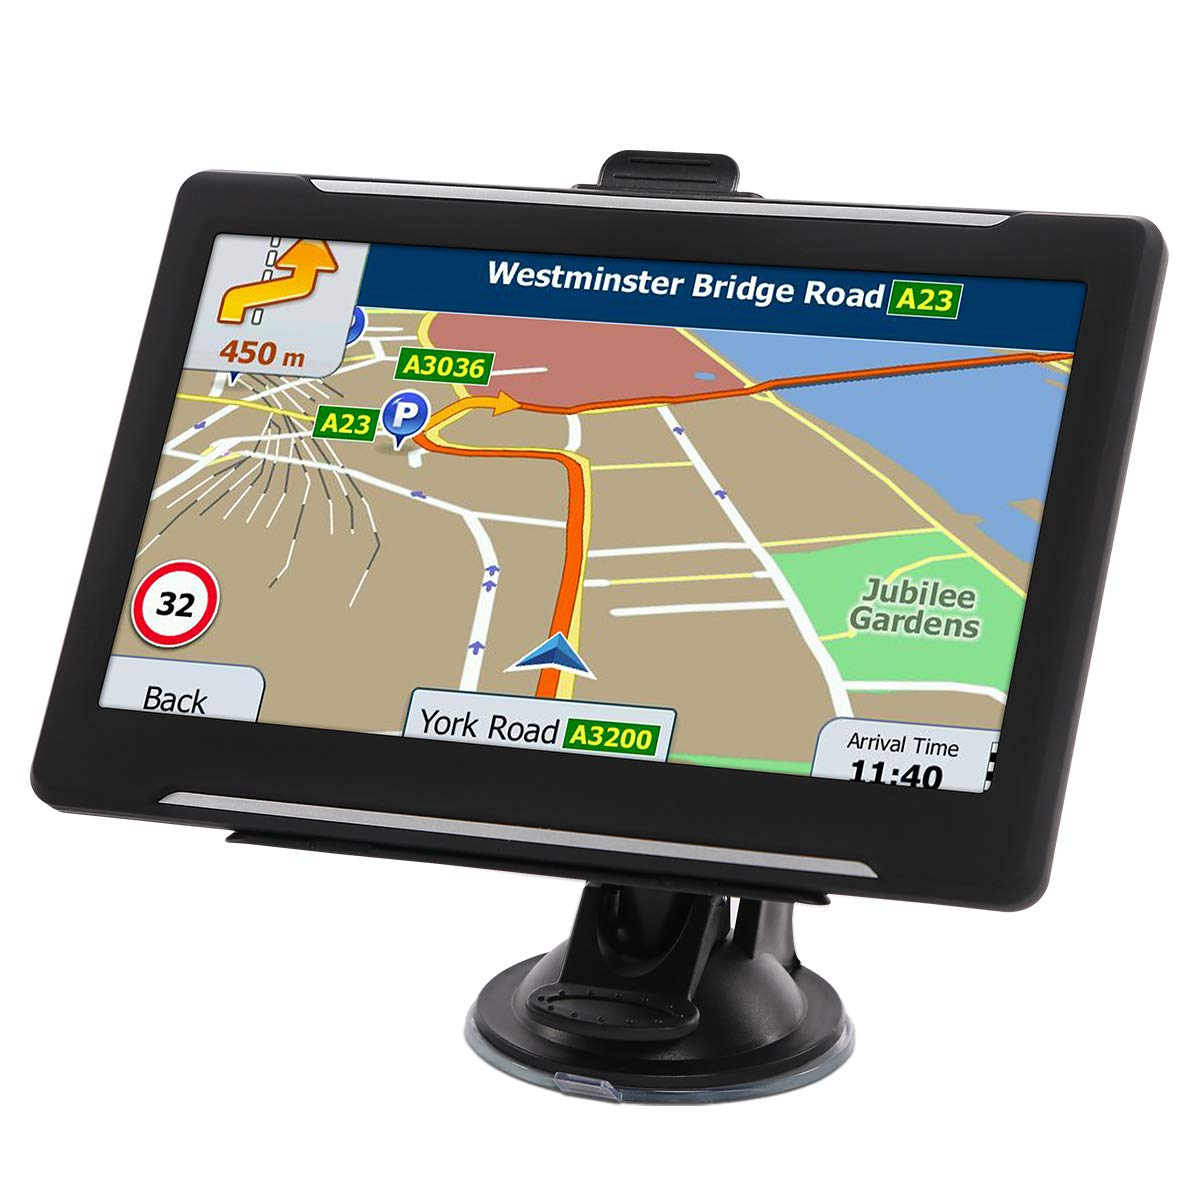 GPS Navigation for car 7 Inches car GPS 2019 Updated North American Lifetime Free MapTouch Screen 8GB Memory Multi Language Spoken GPS Navigation System for Car Vehicle Truck Taxi Driving Alert by Banzk